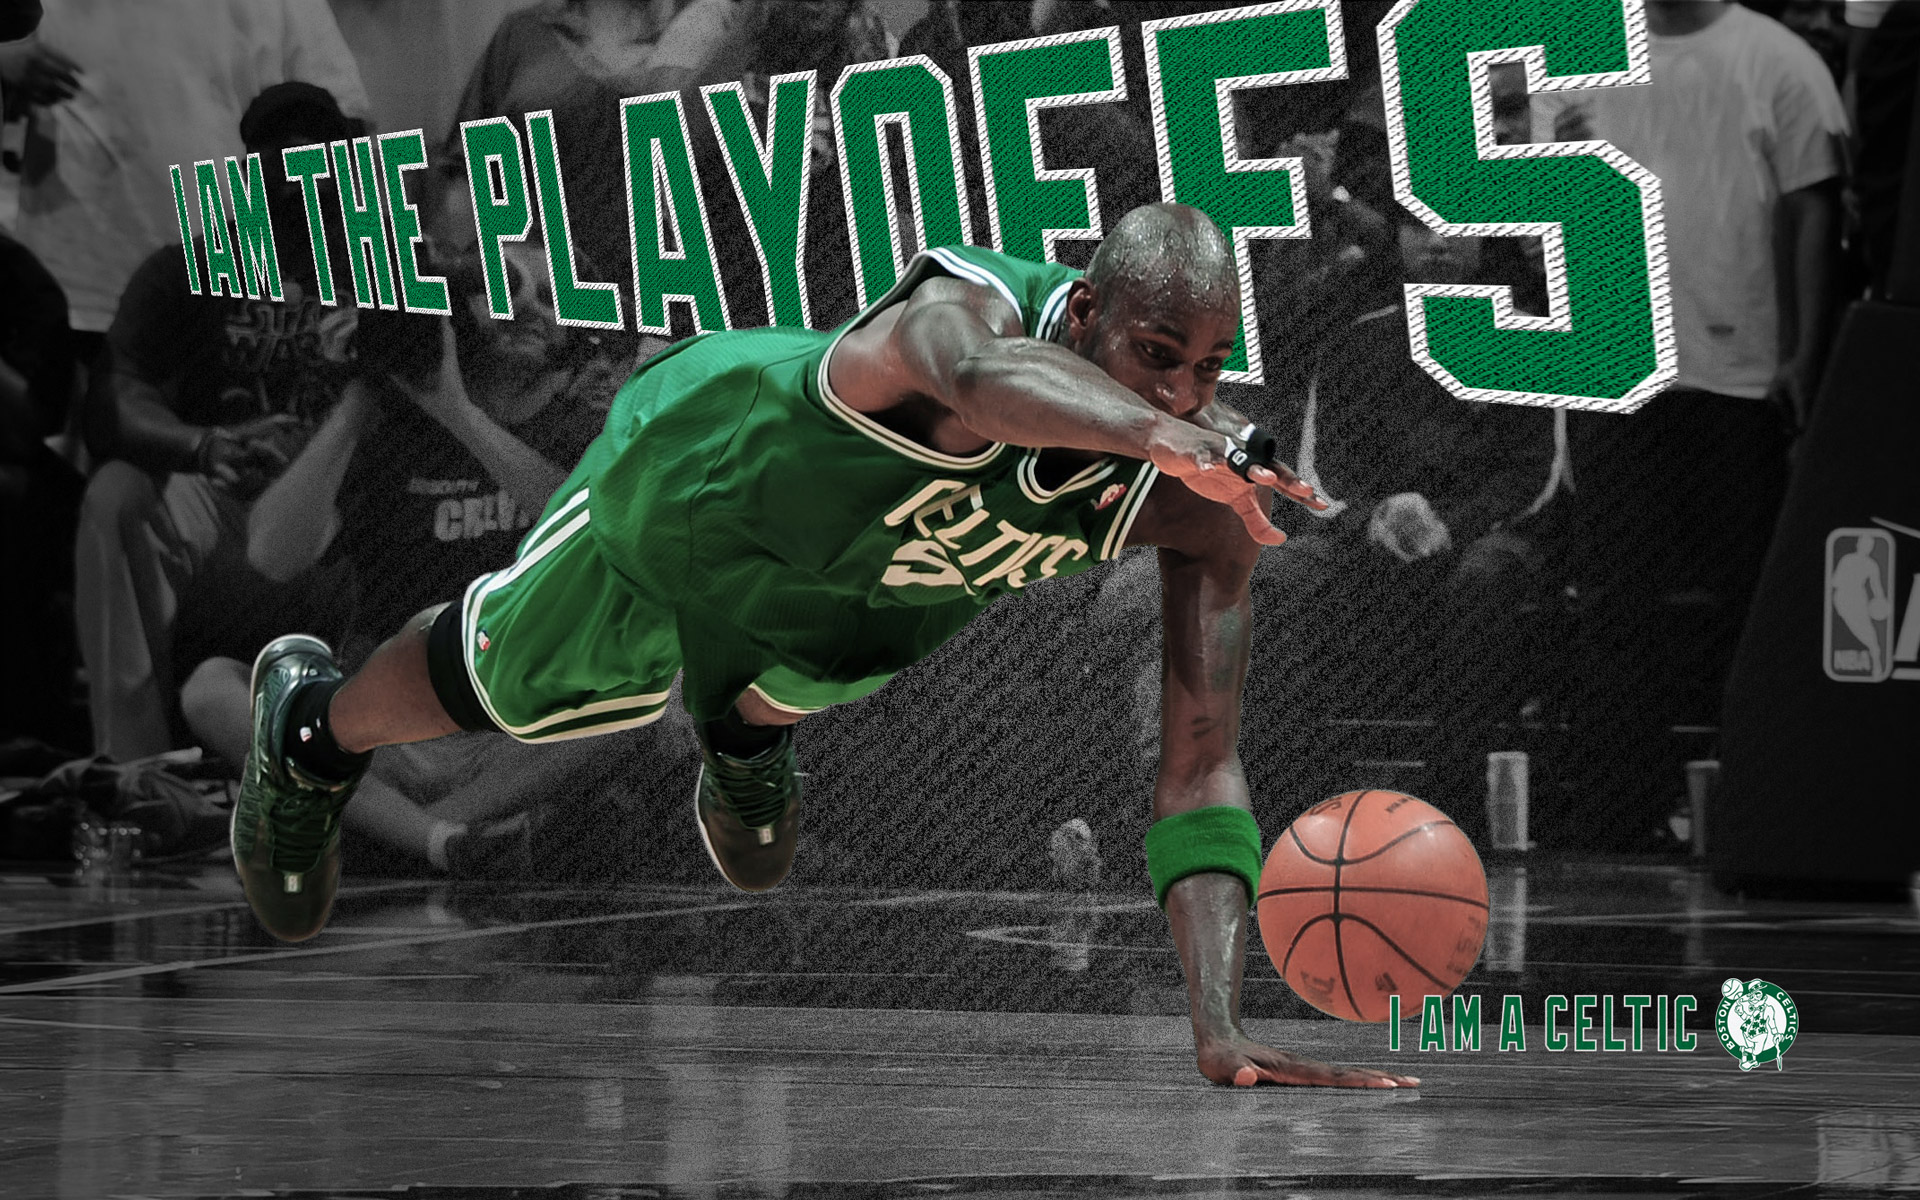 Boston Celtics Wallpapers and Screensavers - WallpaperSafari